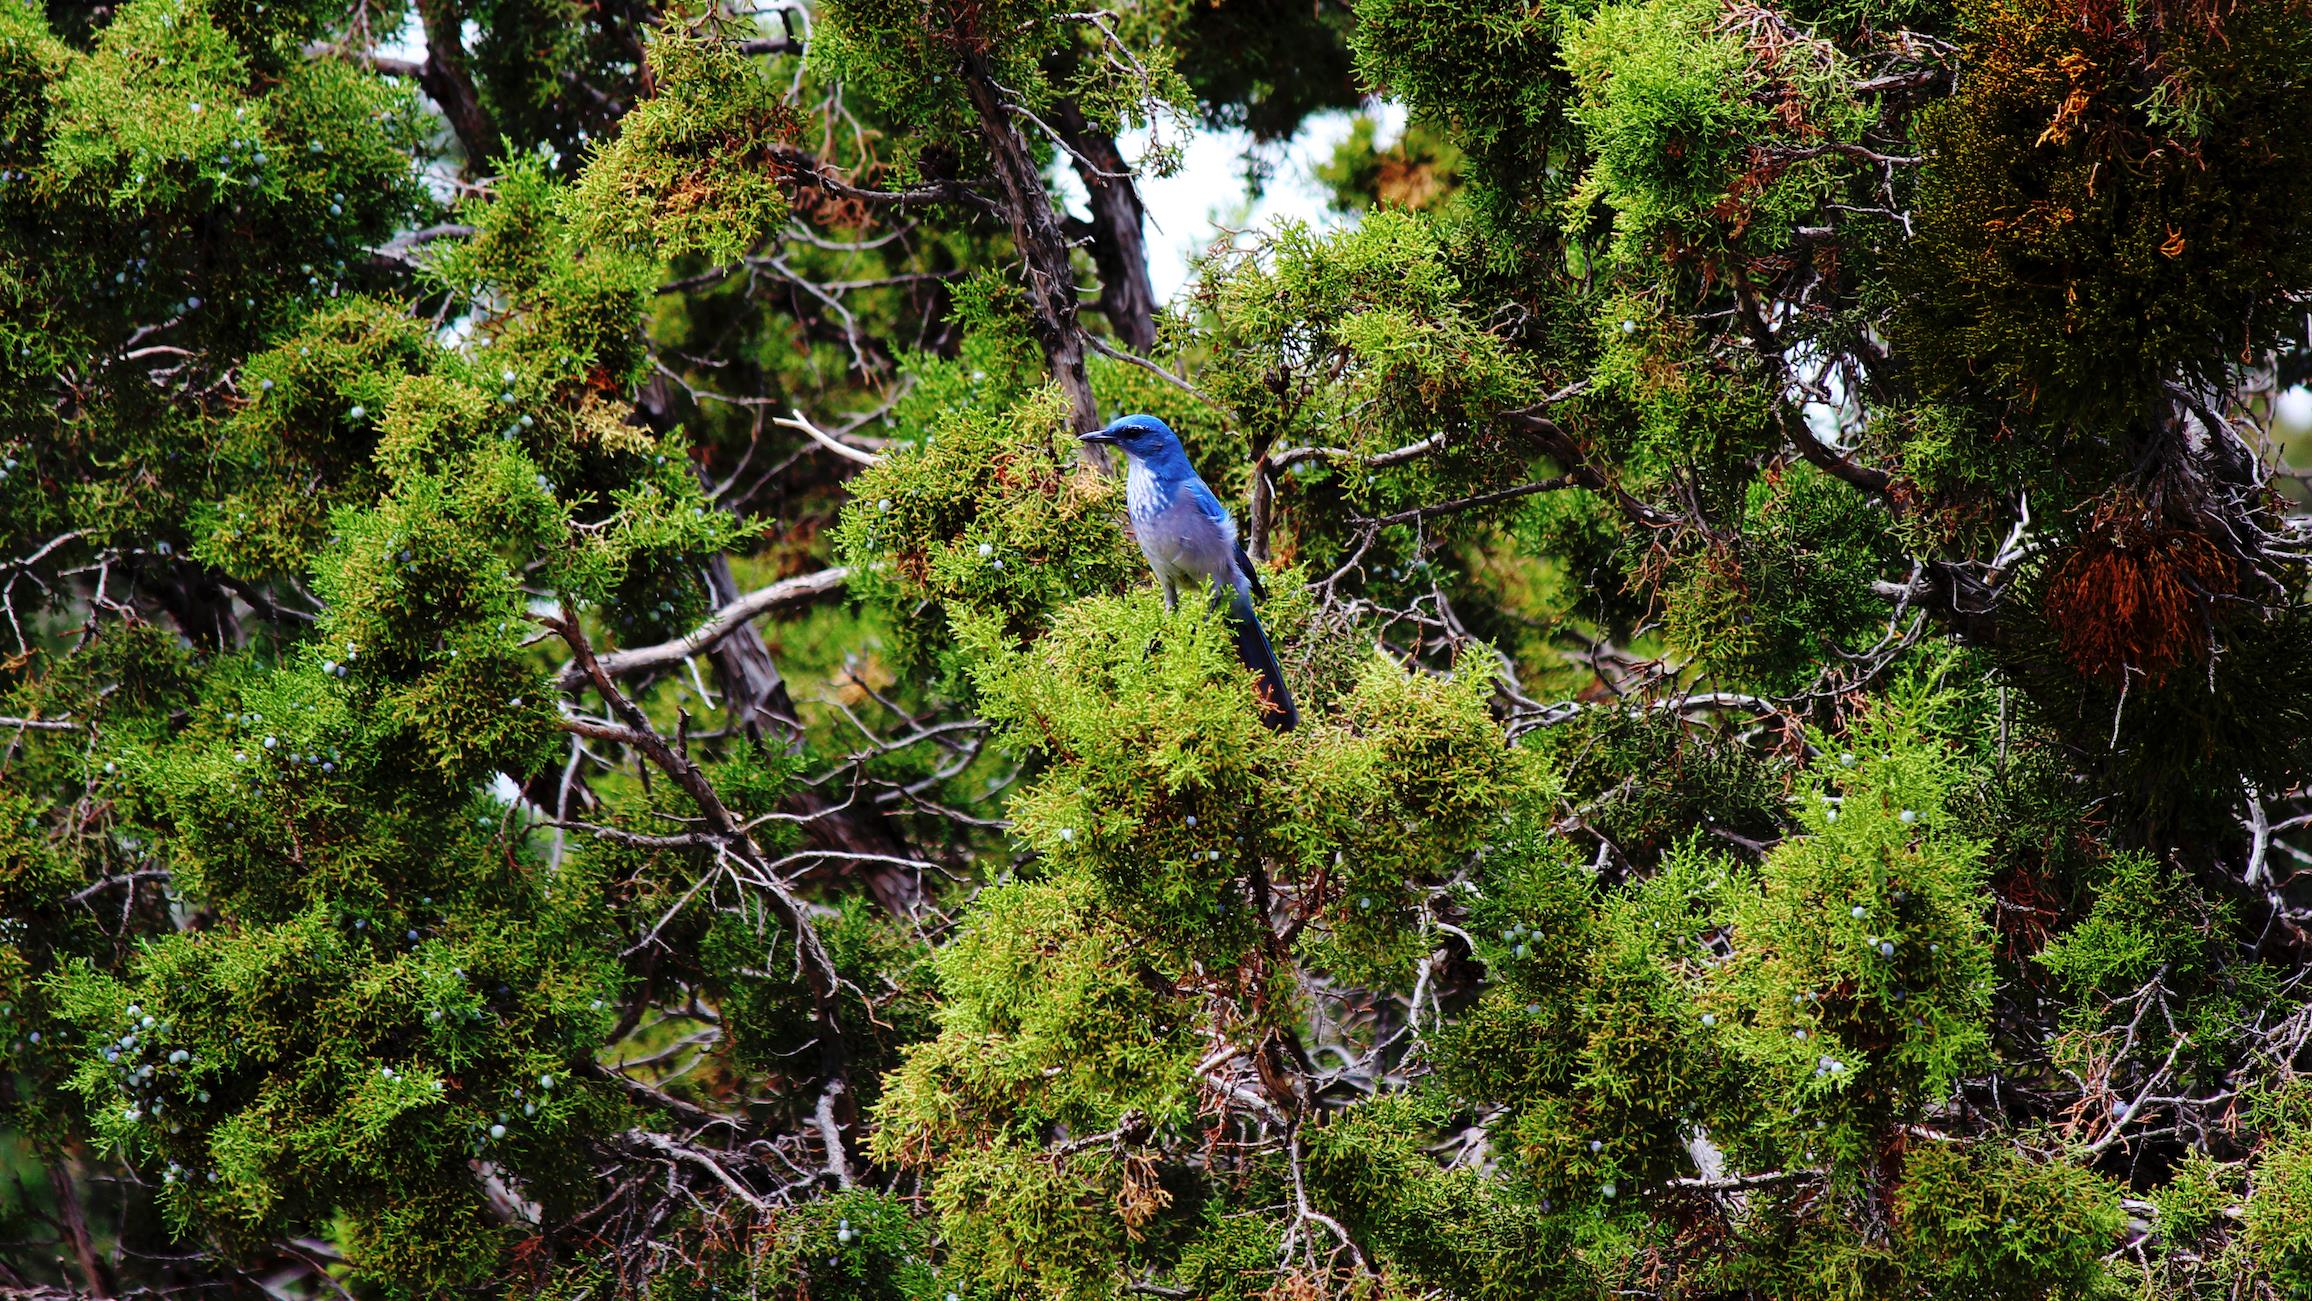 #22 - Blue Bird On Branches